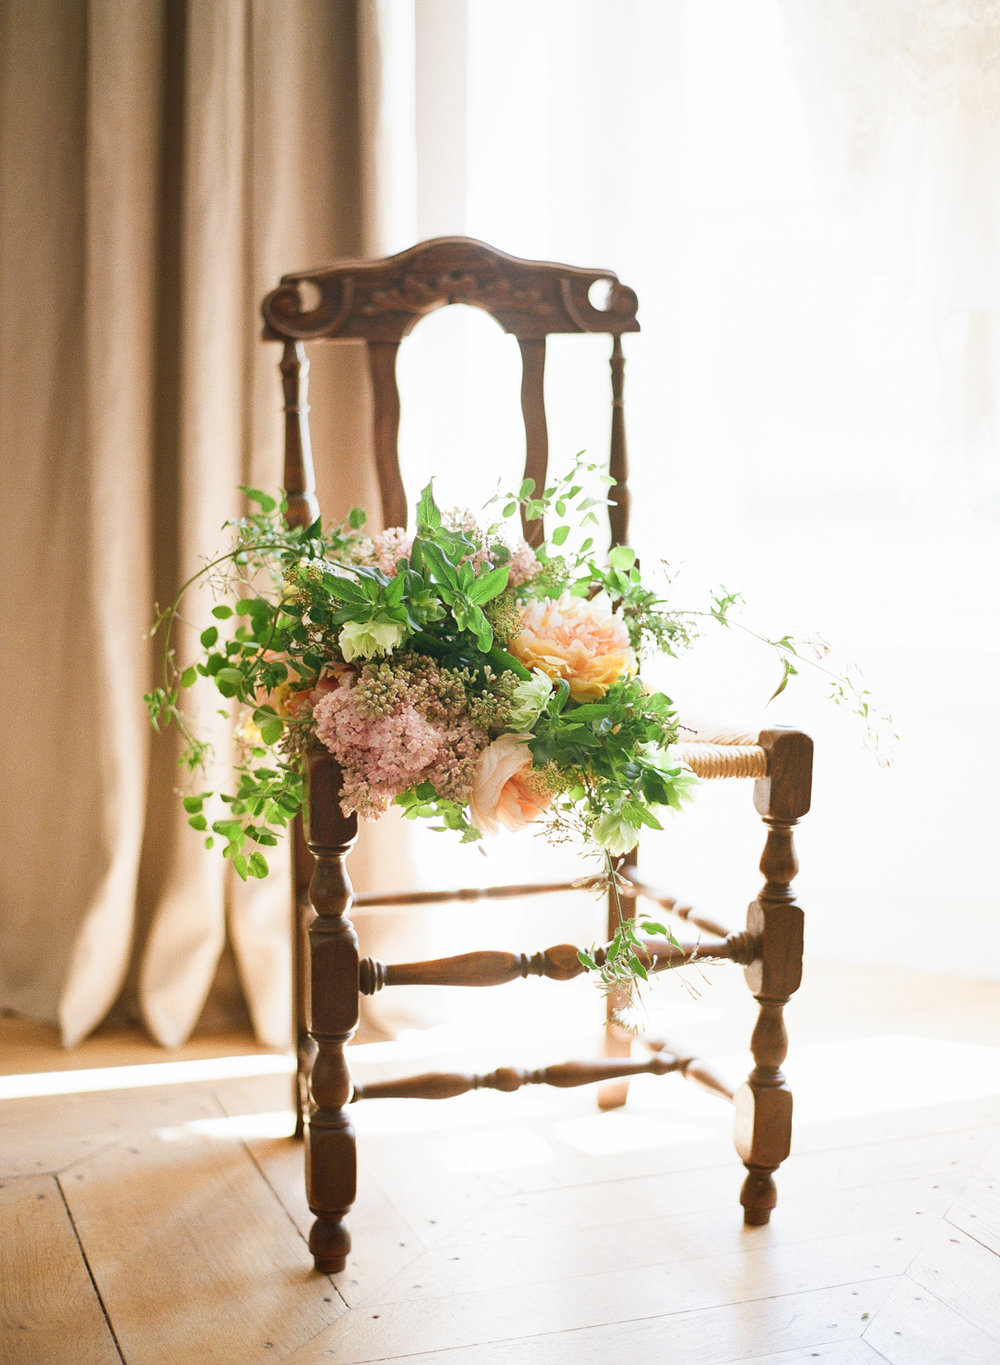 Afternoon light bathes a wooden chair and a gorgeous, rustic bouquet at the 2016 Workshops in Burgundy; photo by Sylvie Gil